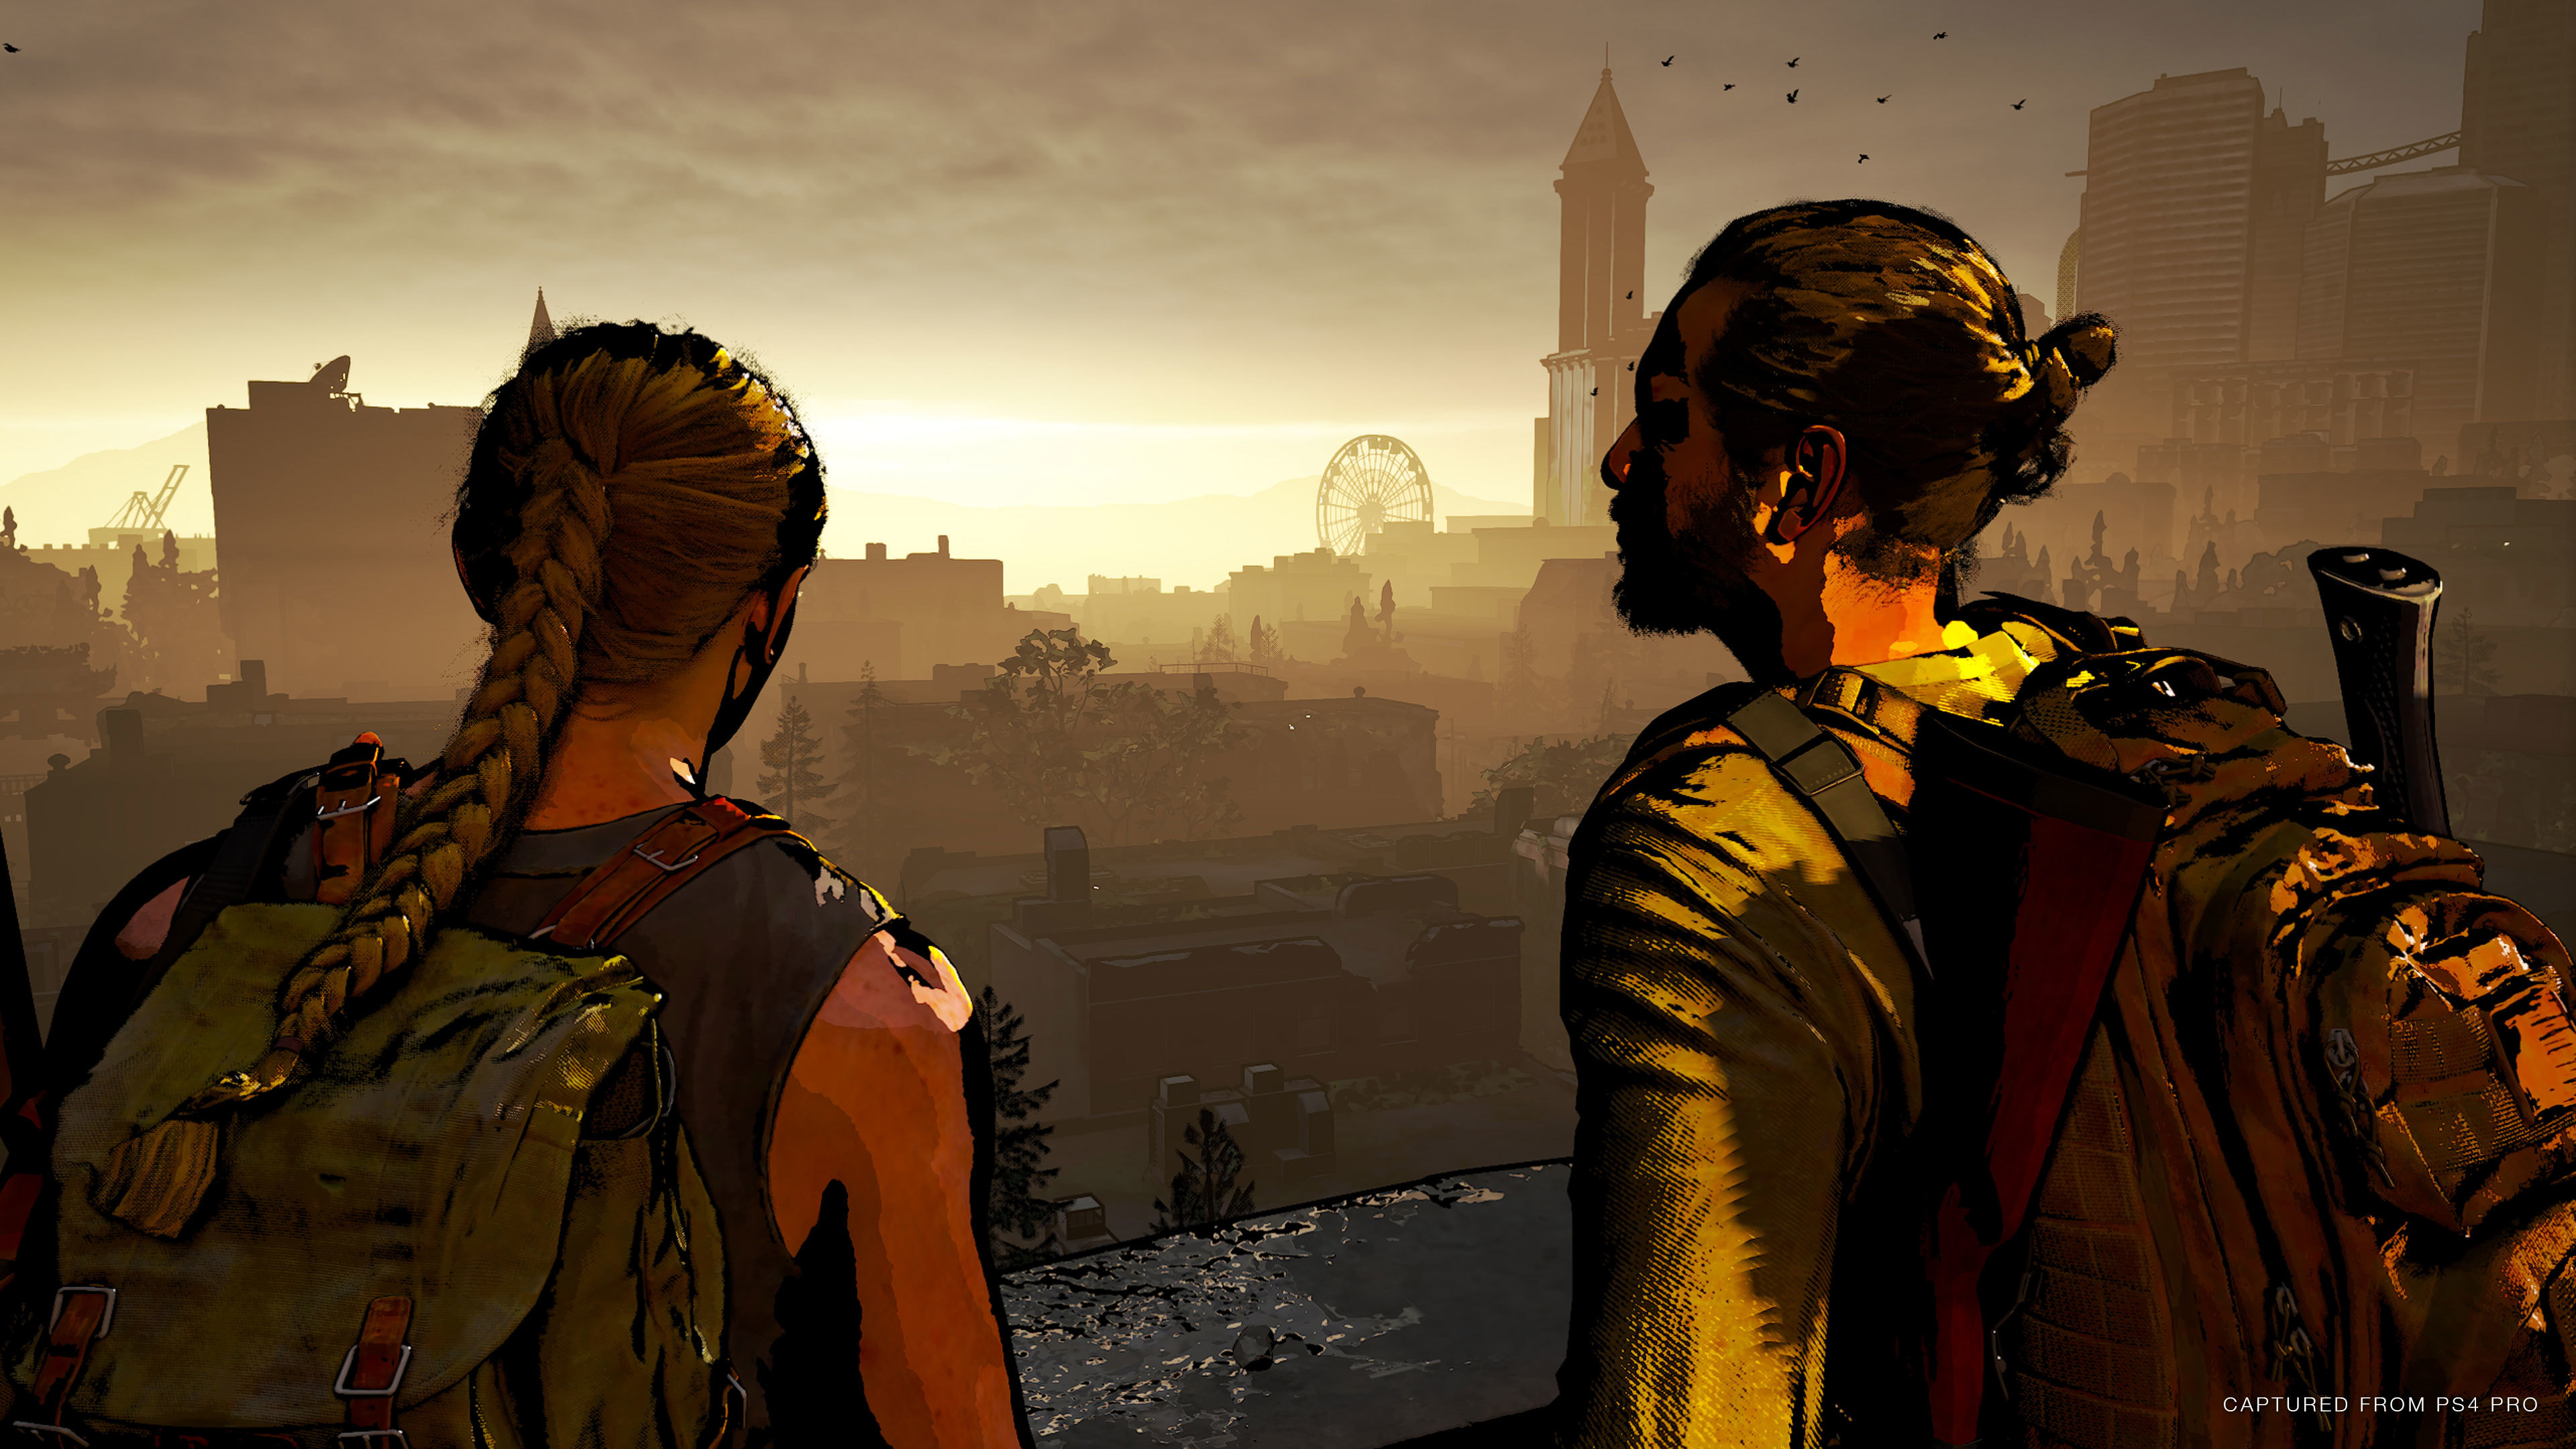 Abby and Manny look out at the Ferris Wheel in the distance with the Dungeon render mode over the image.